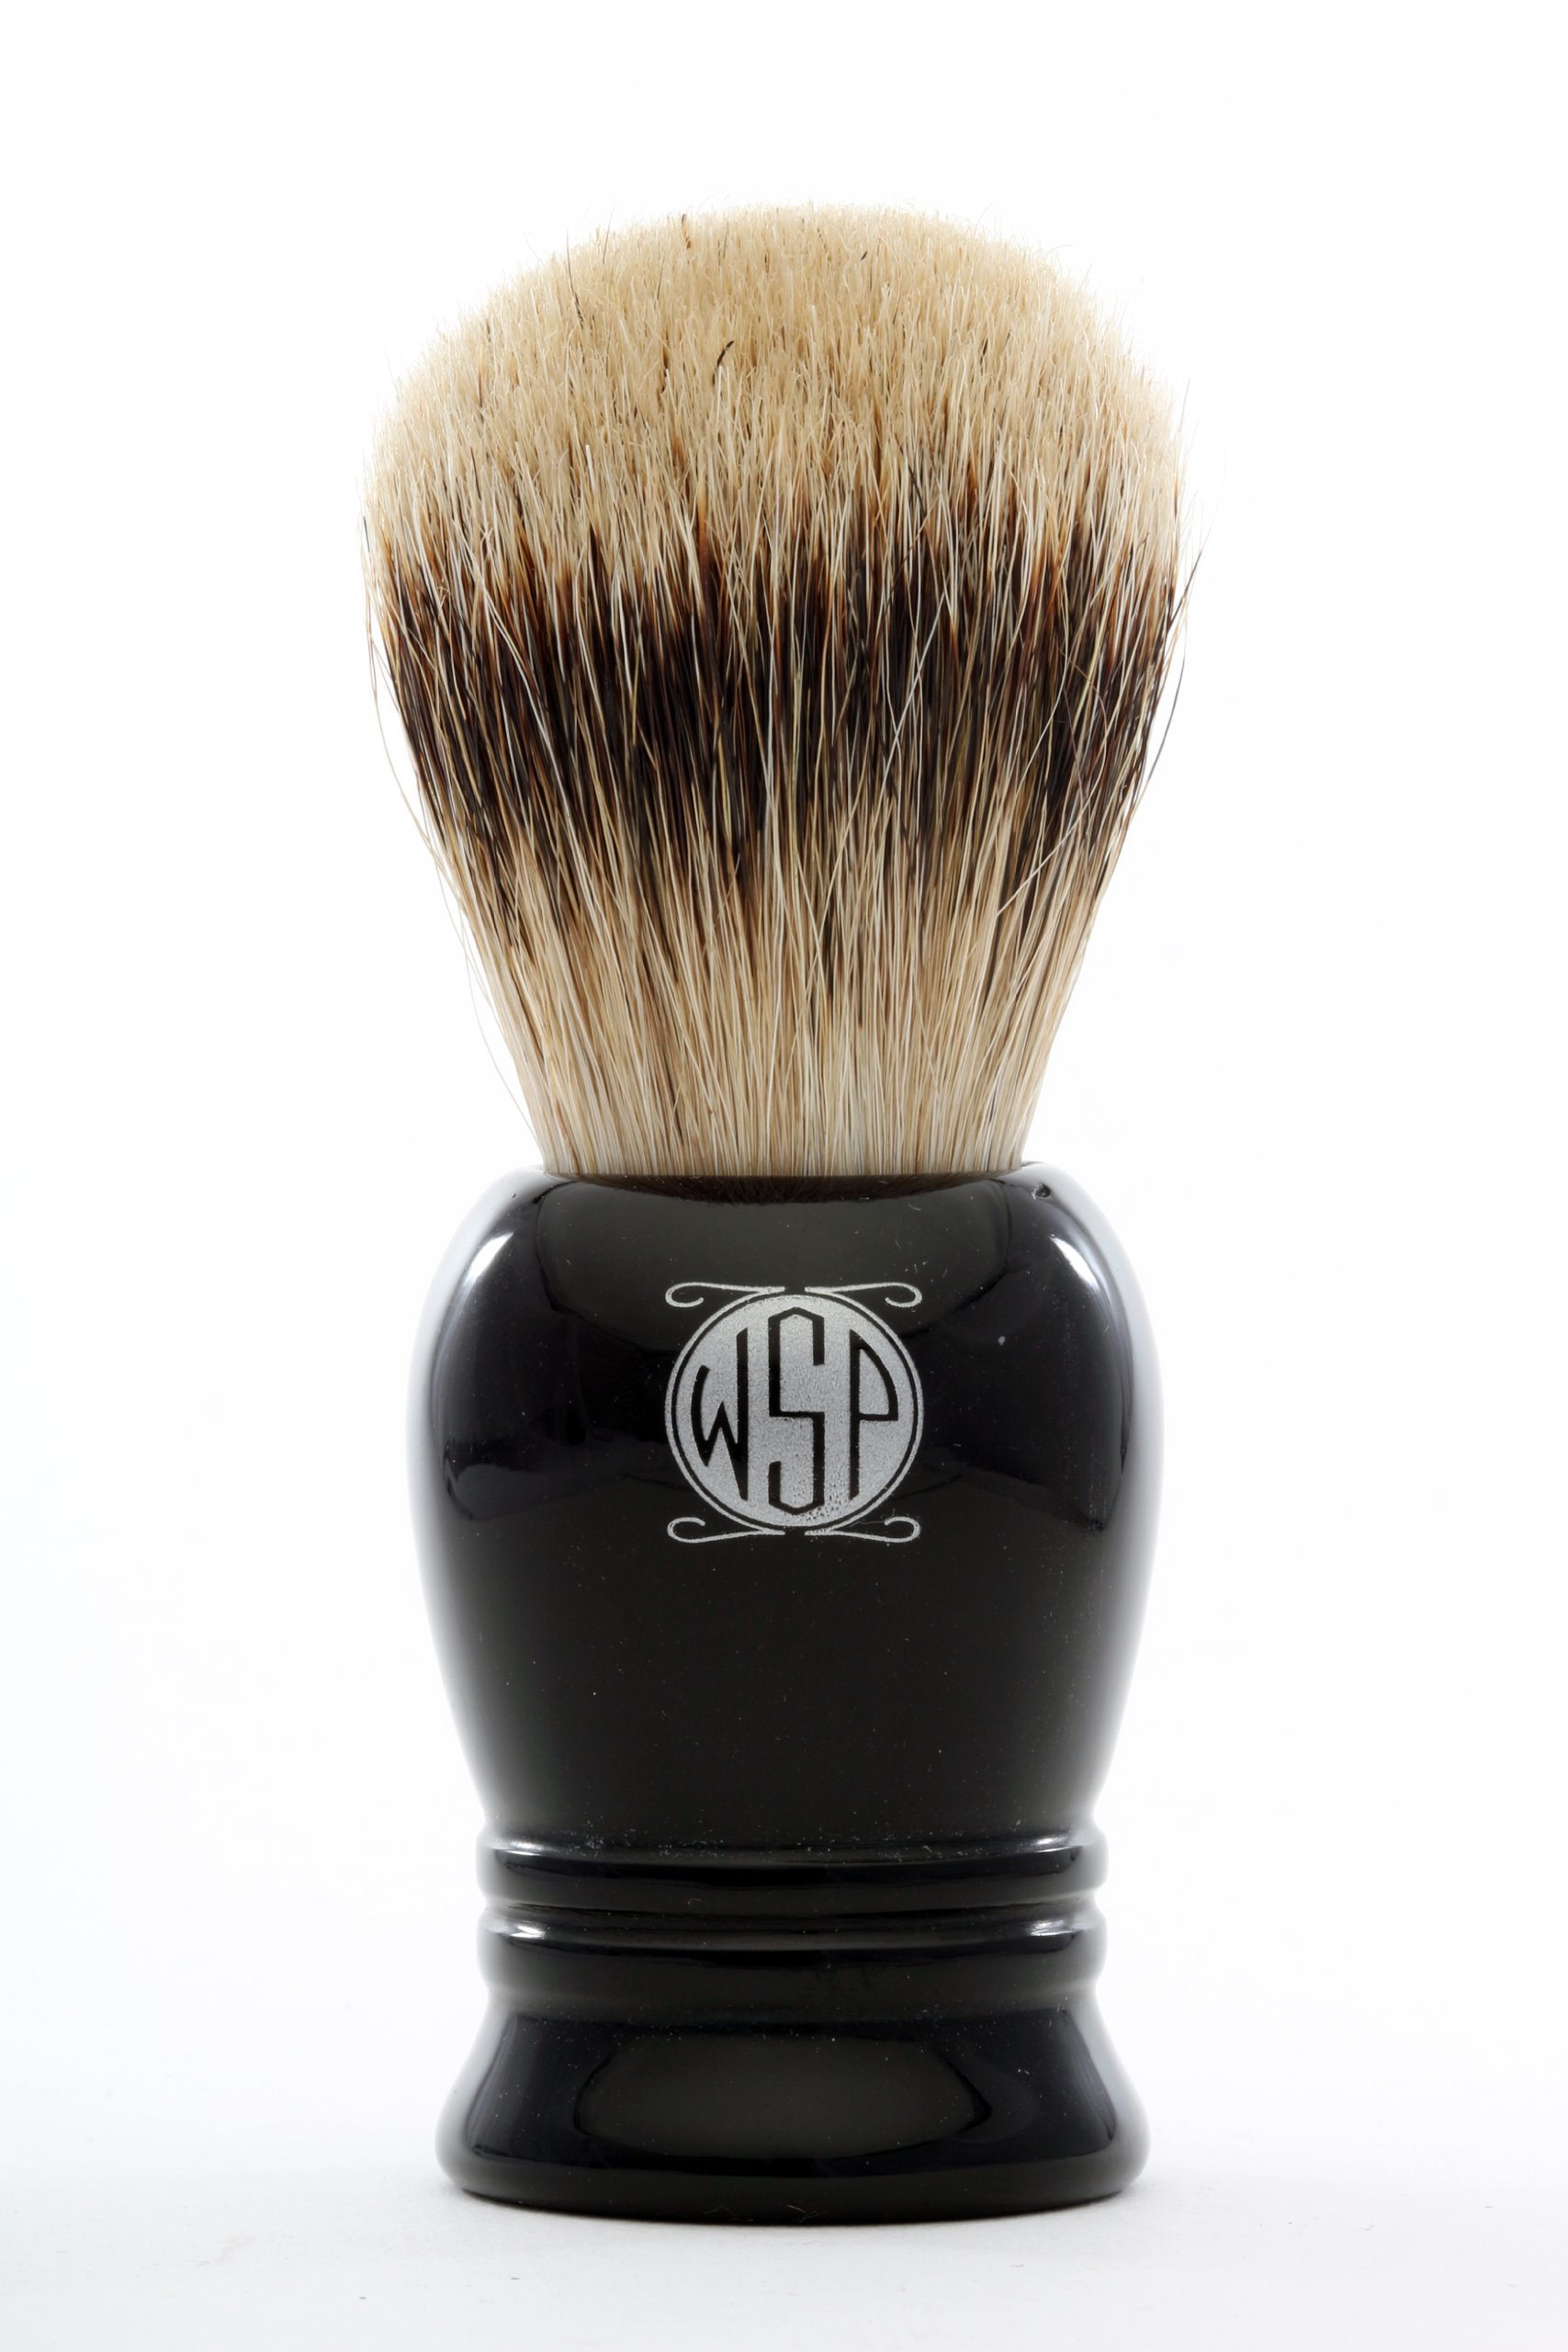 Silvertip Badger Shaving Brush High Density WSP ''Prince'' (Black)